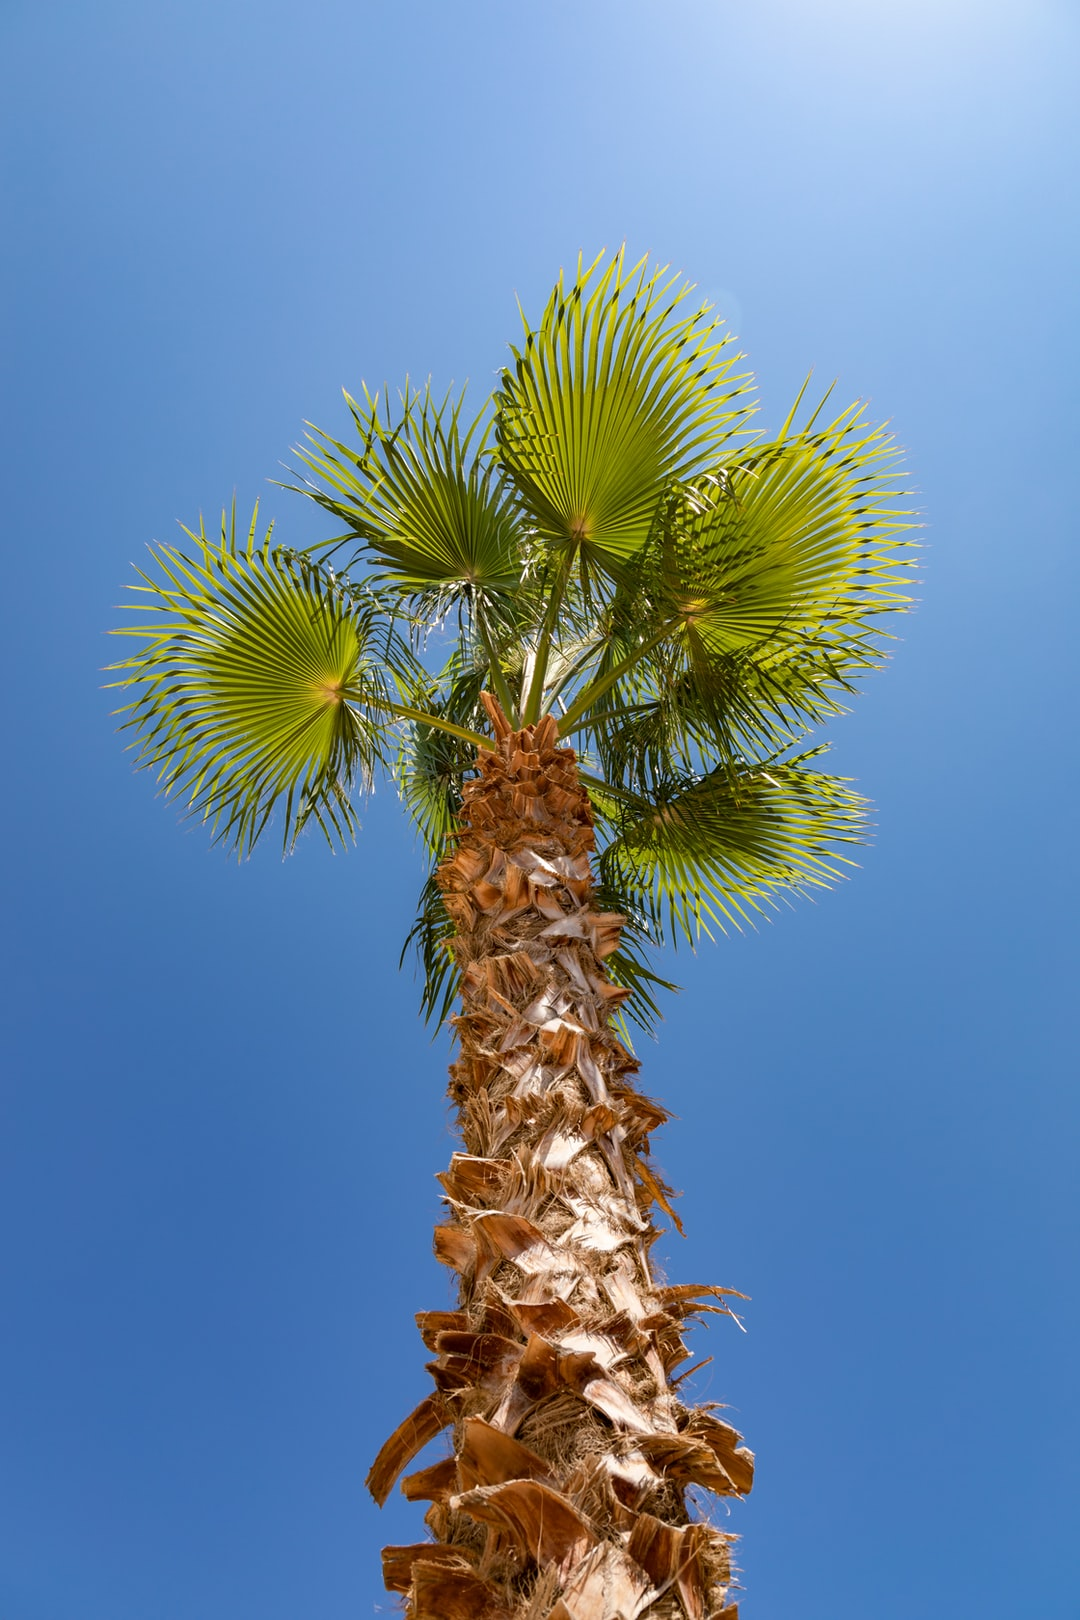 Low angle palm tree.